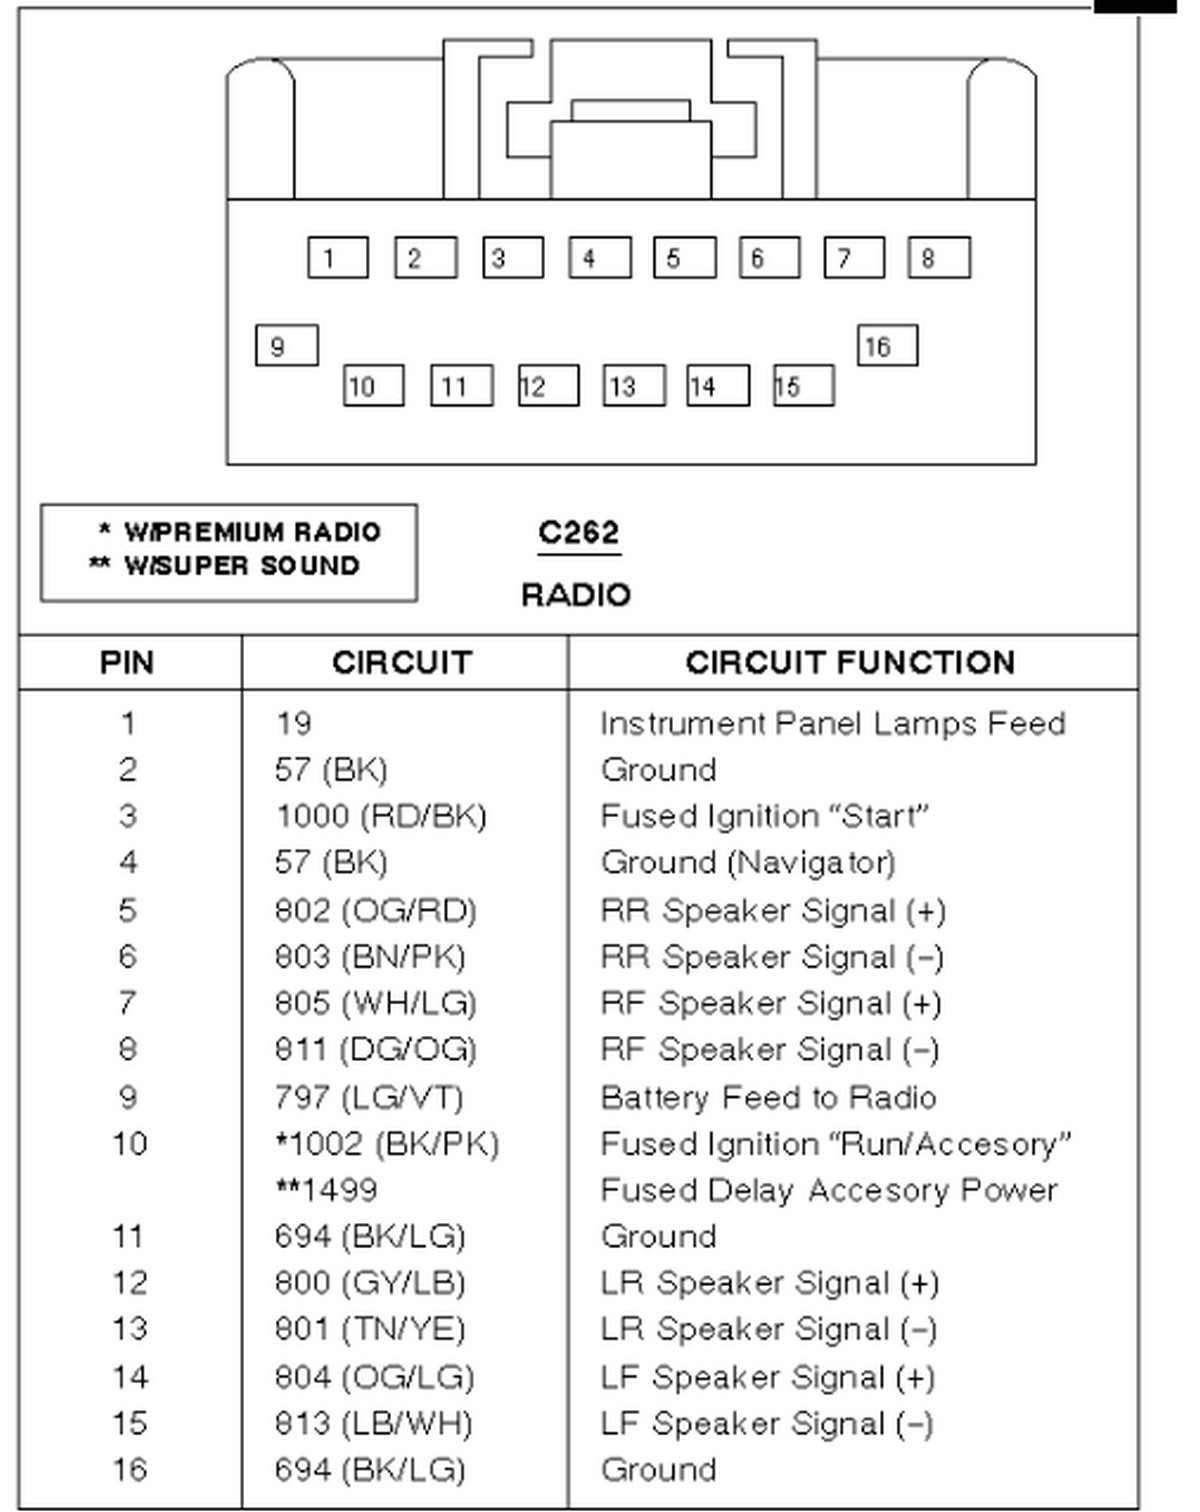 Ford Expedition Eddie Bauer 2001 stereo wiring connector radio 2004 ford escape wiring diagram 2004 isuzu ascender wiring diagram 2004 ford expedition wiring diagram at crackthecode.co